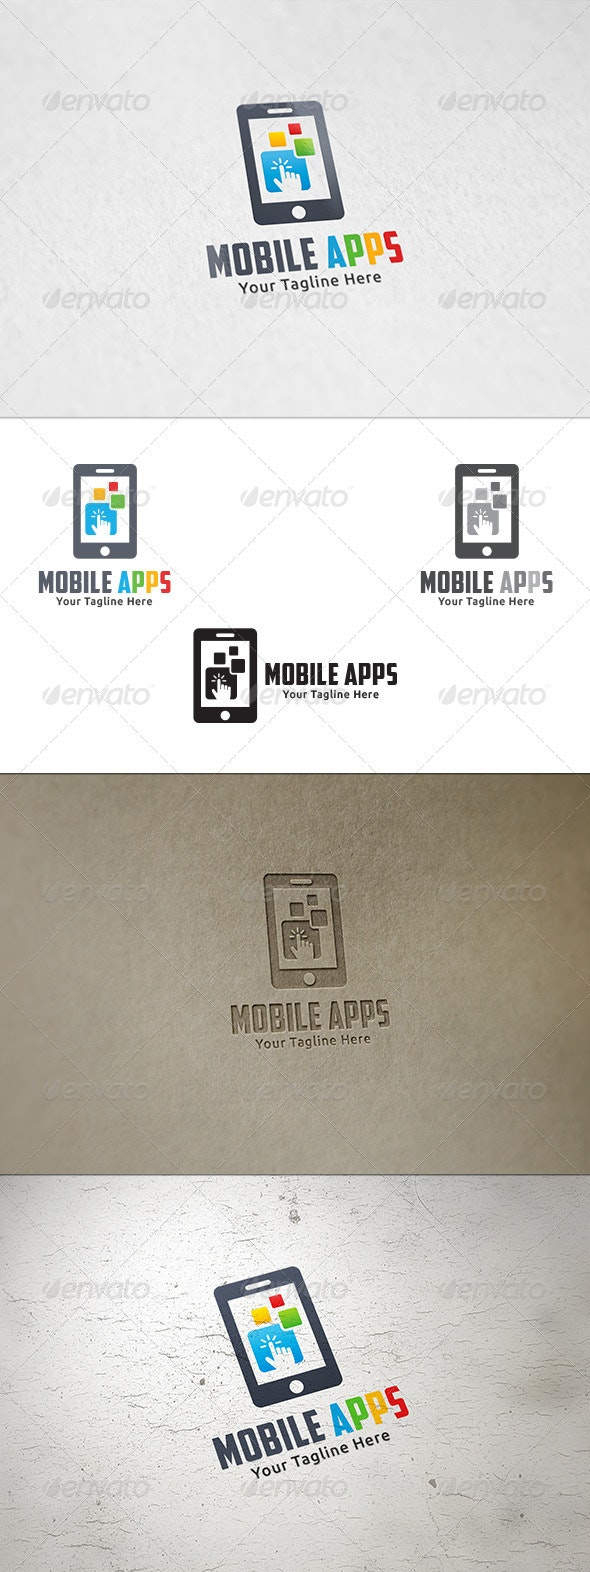 Mobile Apps - Logo Template